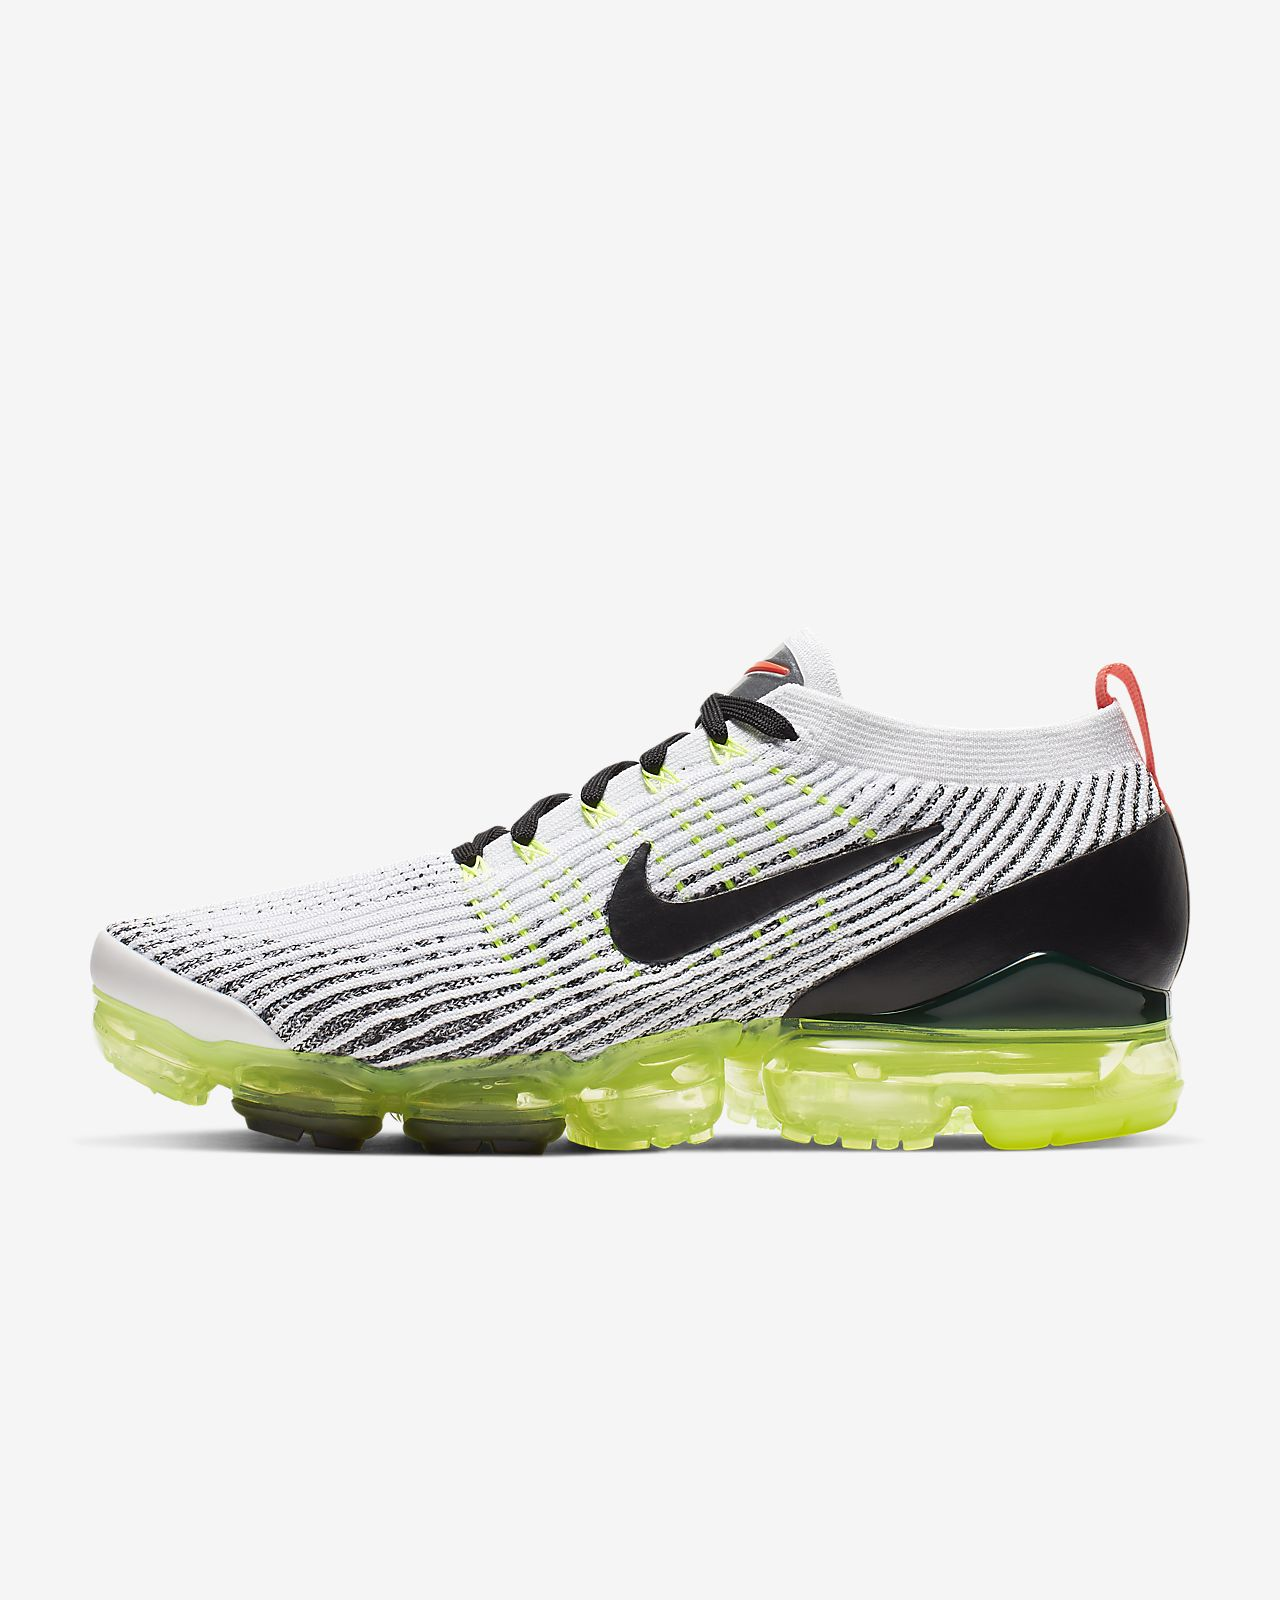 8d84f60dfe3 Nike Air VaporMax Flyknit 3 Men s Shoe. Nike.com GB